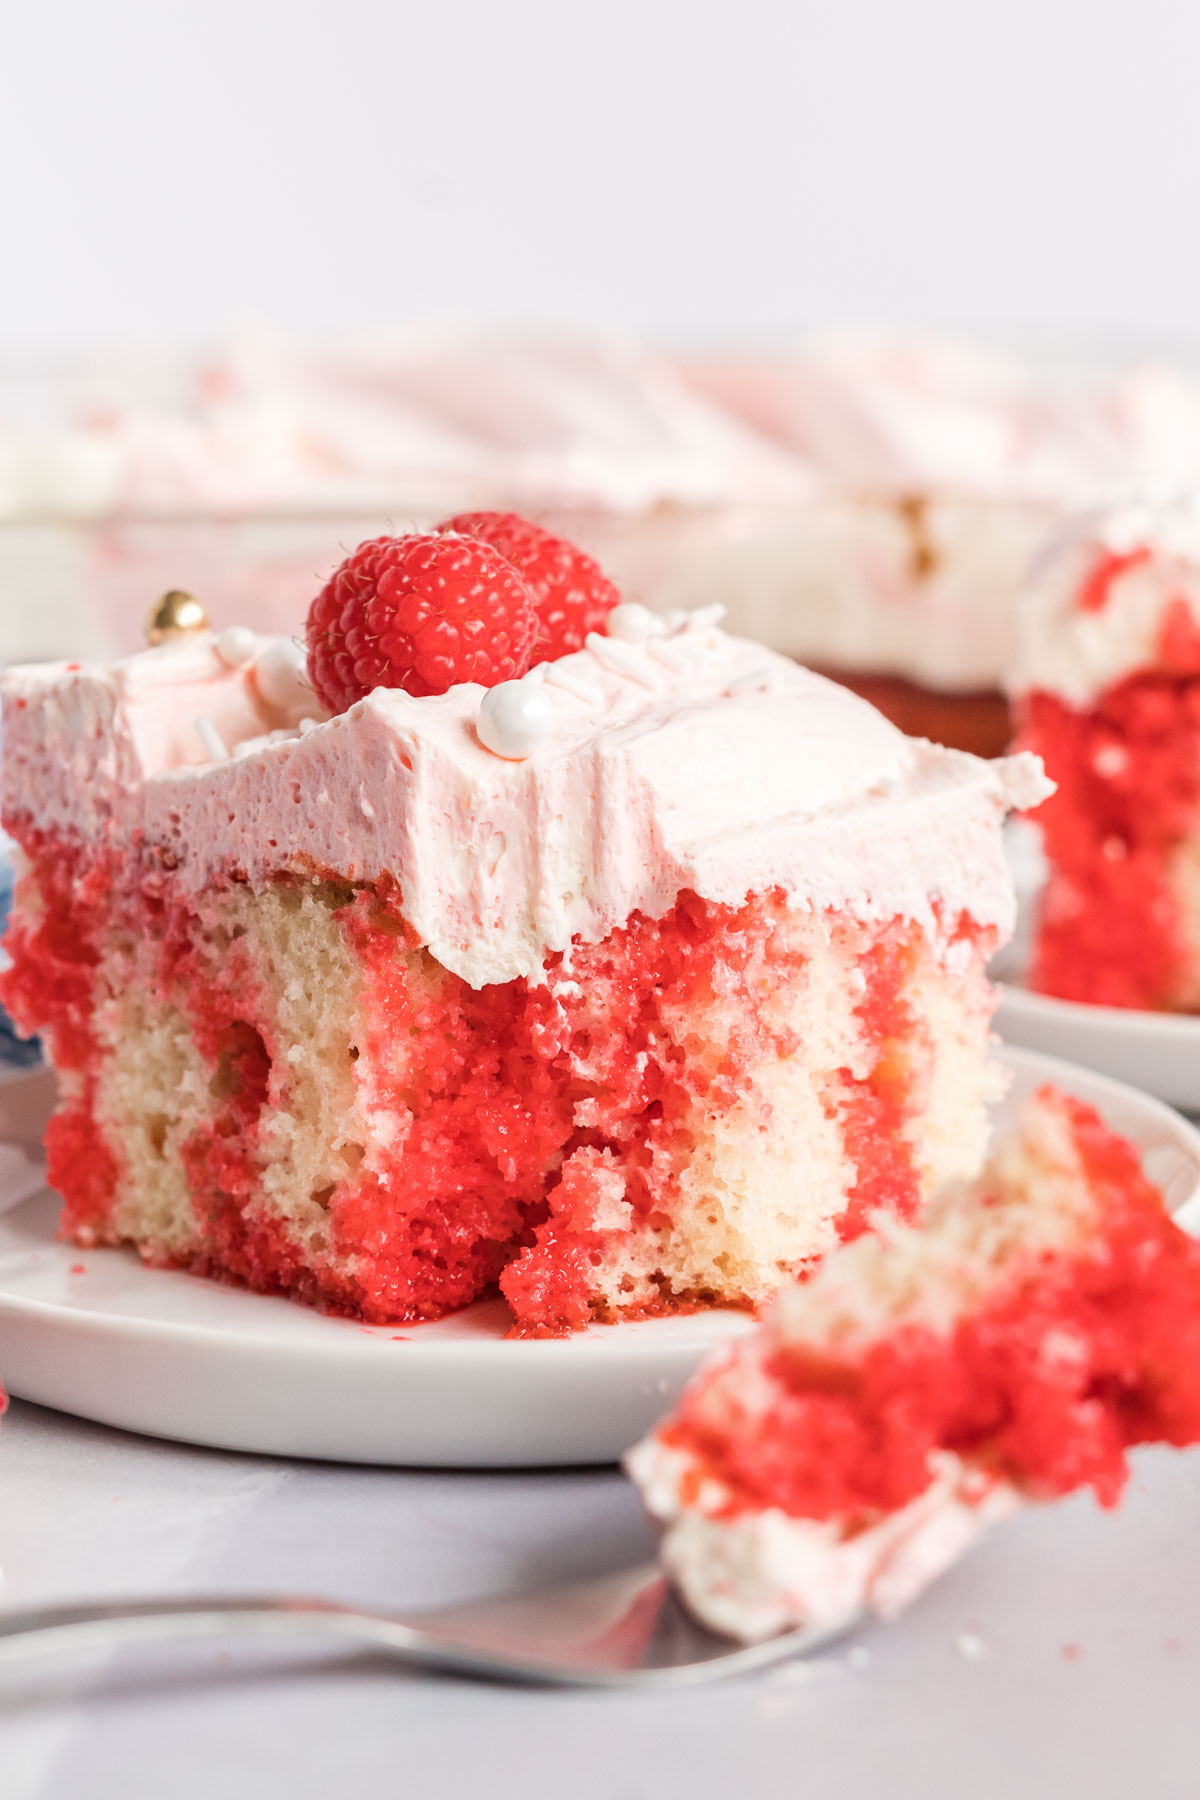 Slice of raspberry poke cake with a bite on a fork.